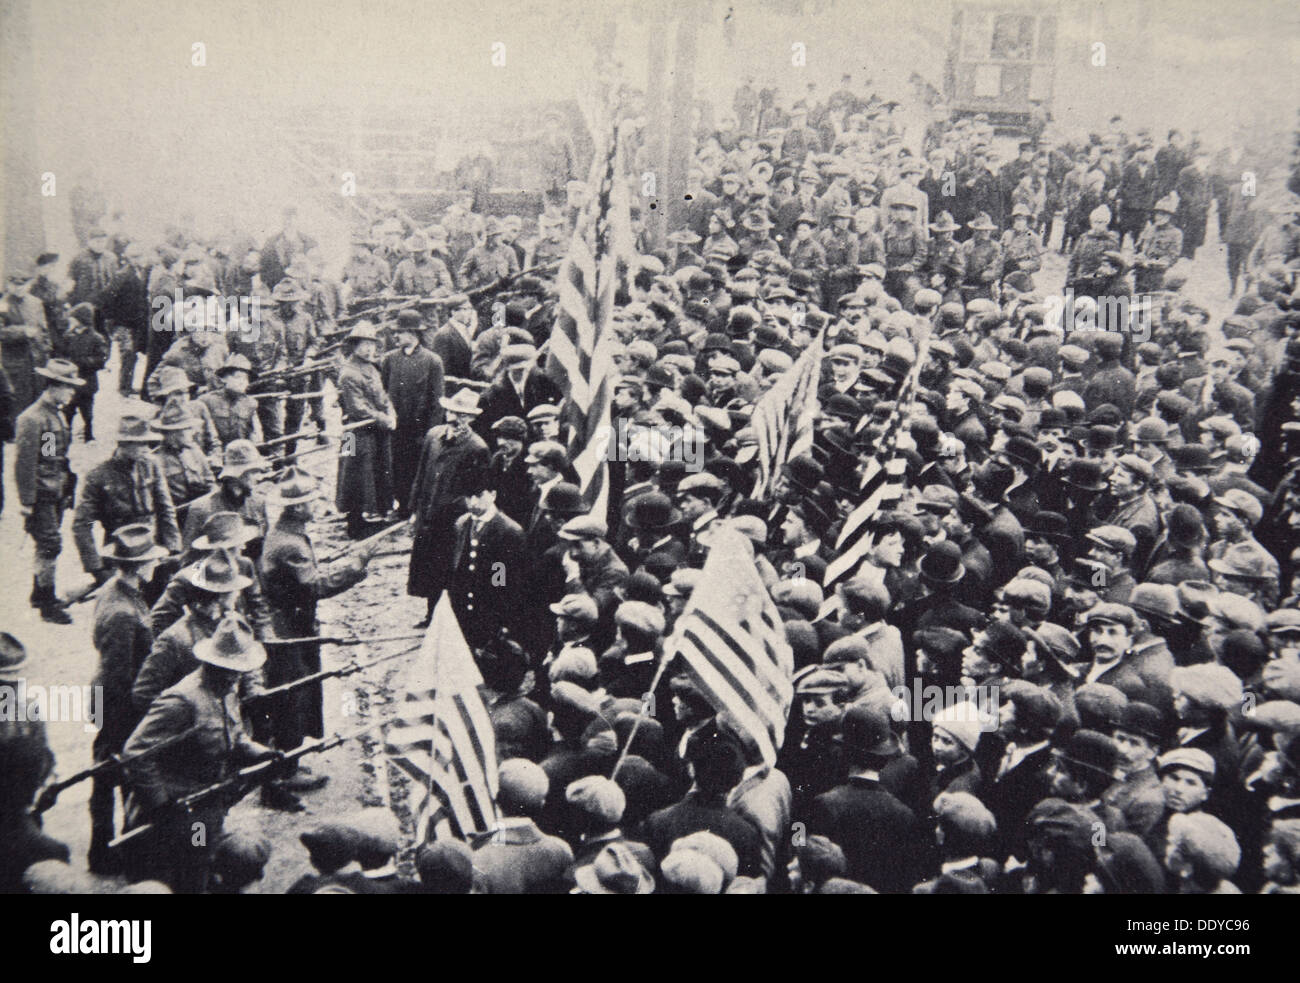 Armed troops confronting protesters during an industrial dispute, USA, 1912. Artist: Unknown - Stock Image